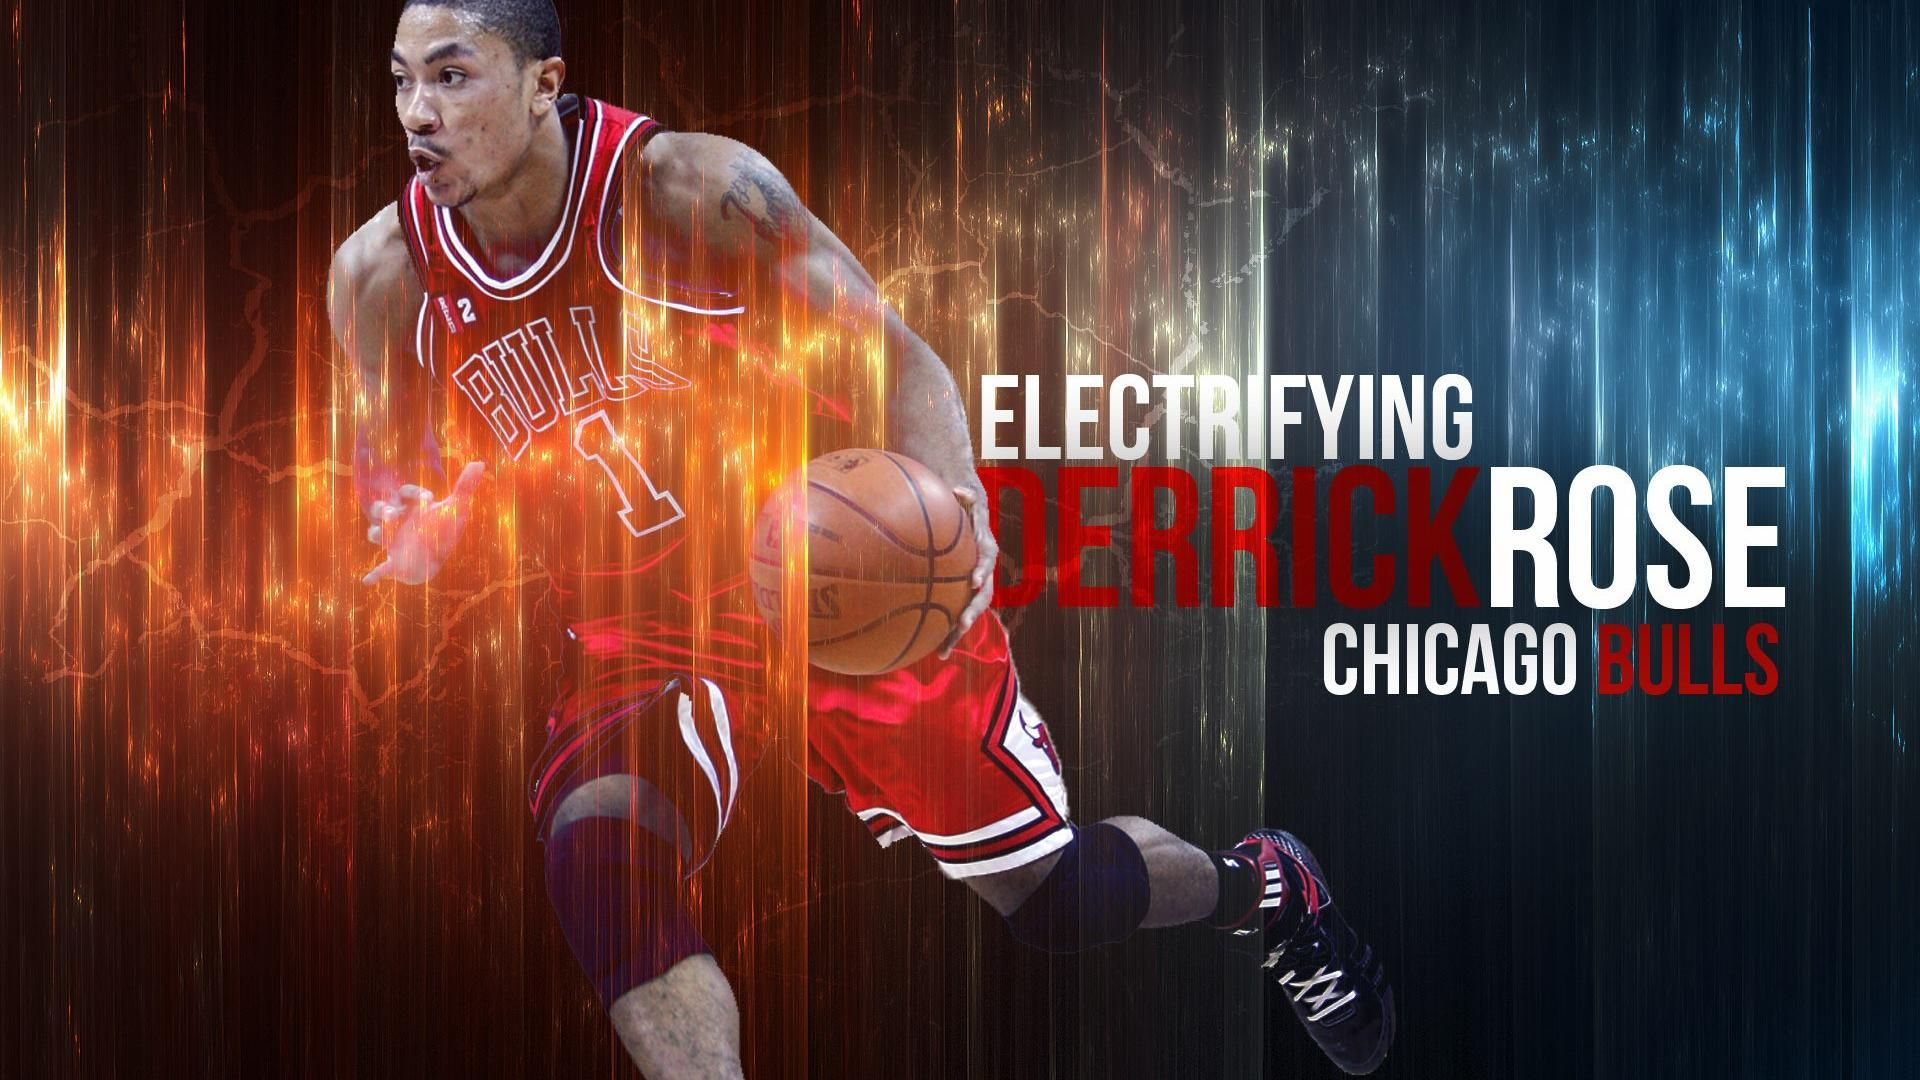 Basketball nba derrick rose wallpaper 1920x1080 128341 - Derrick rose cavs wallpaper ...